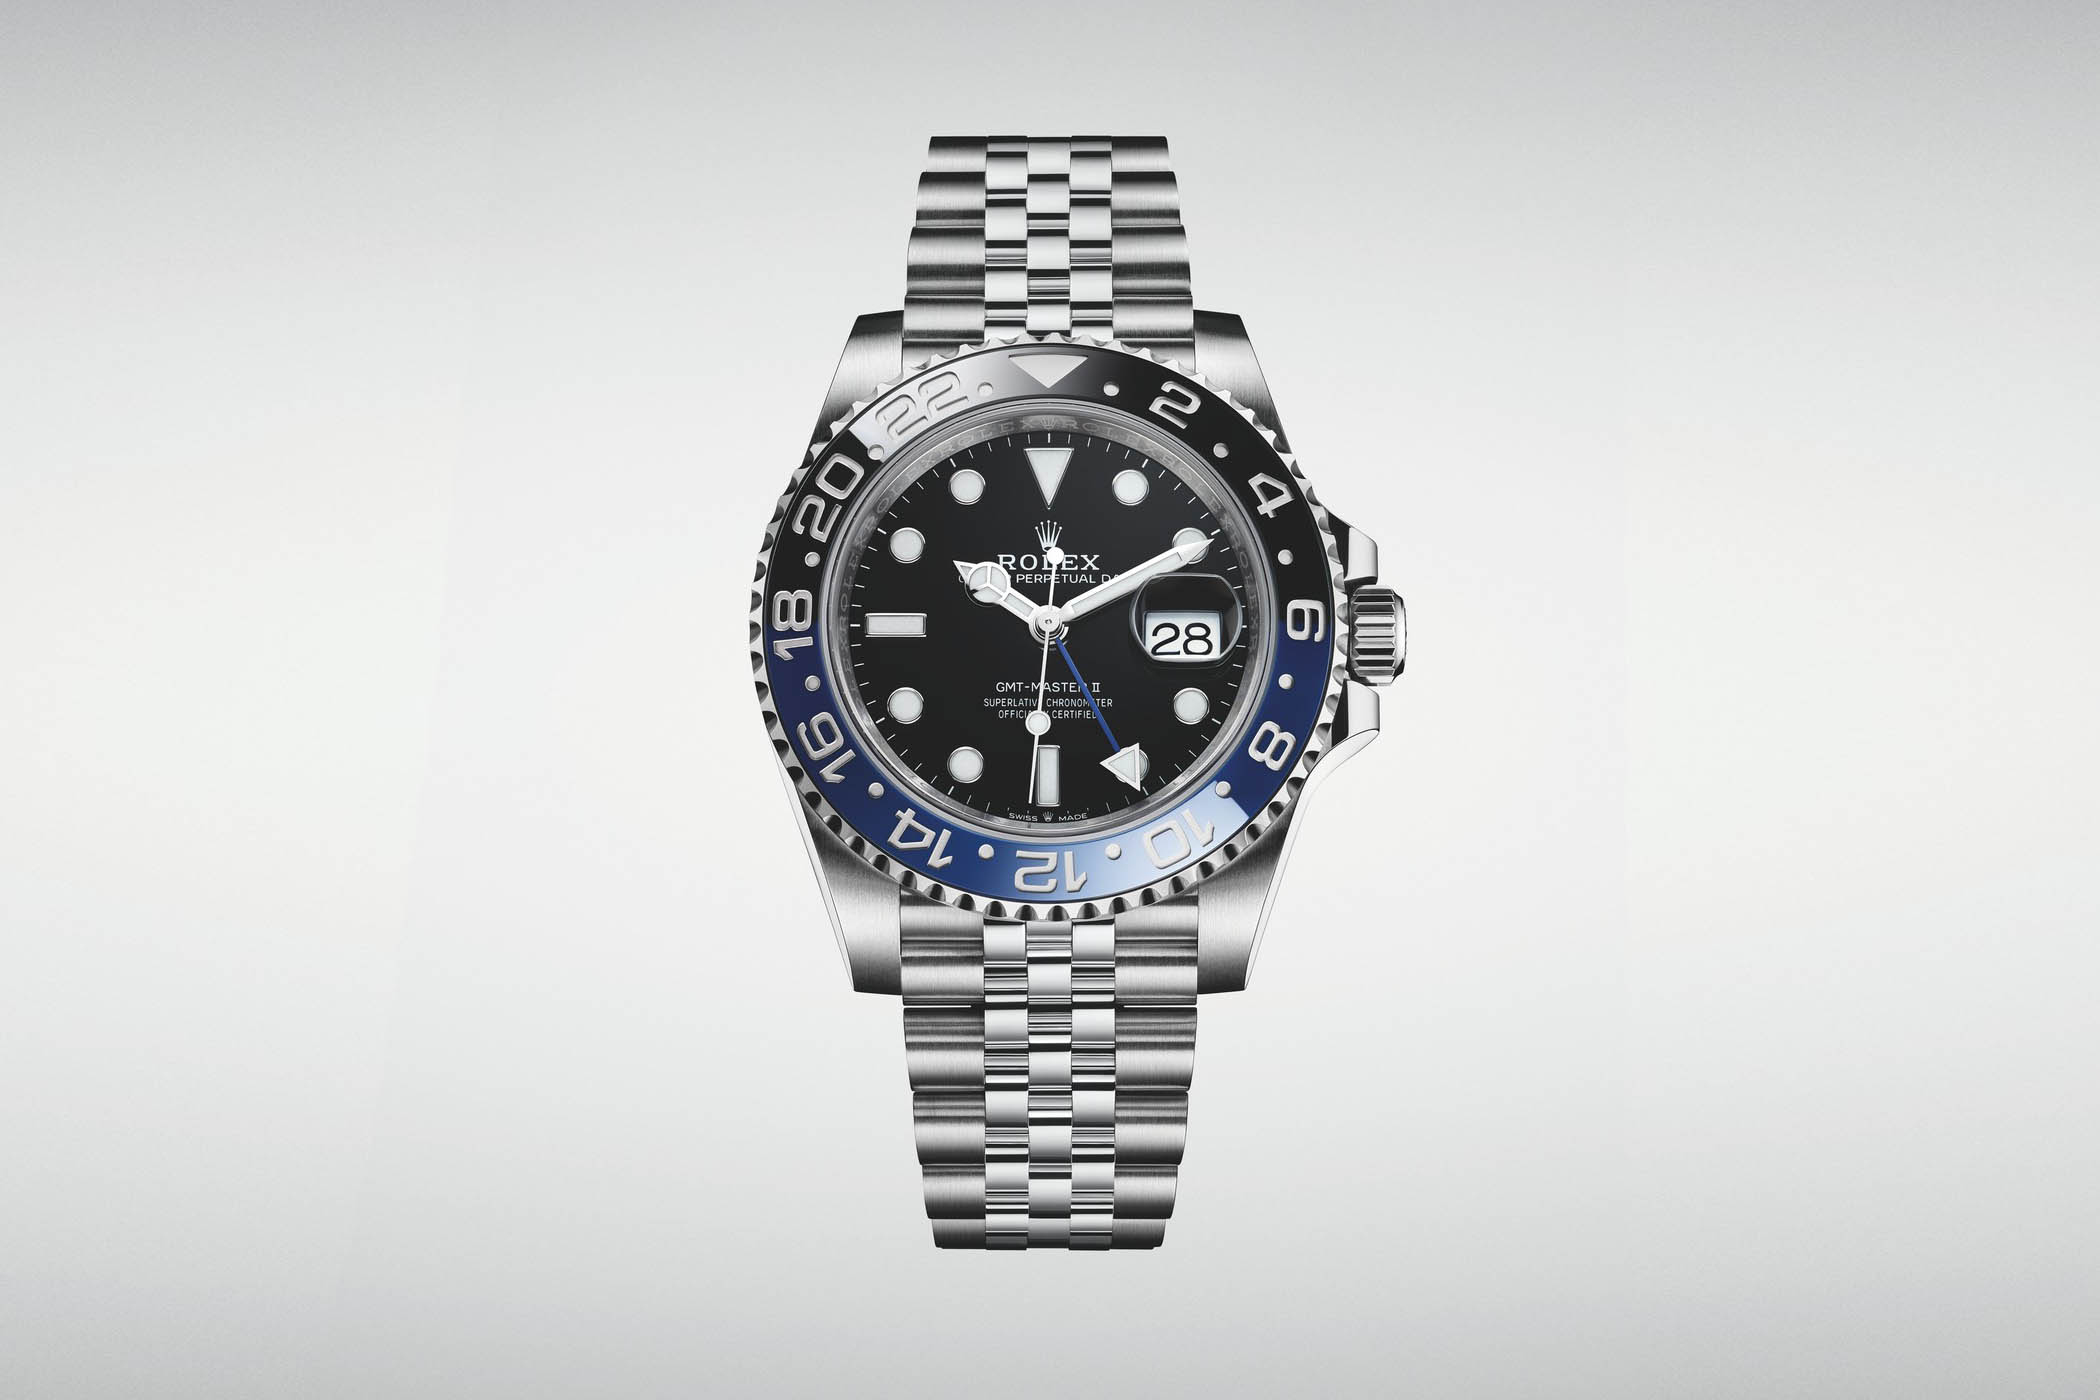 Baselworld 2019 - The Updated Rolex GMT-Master II